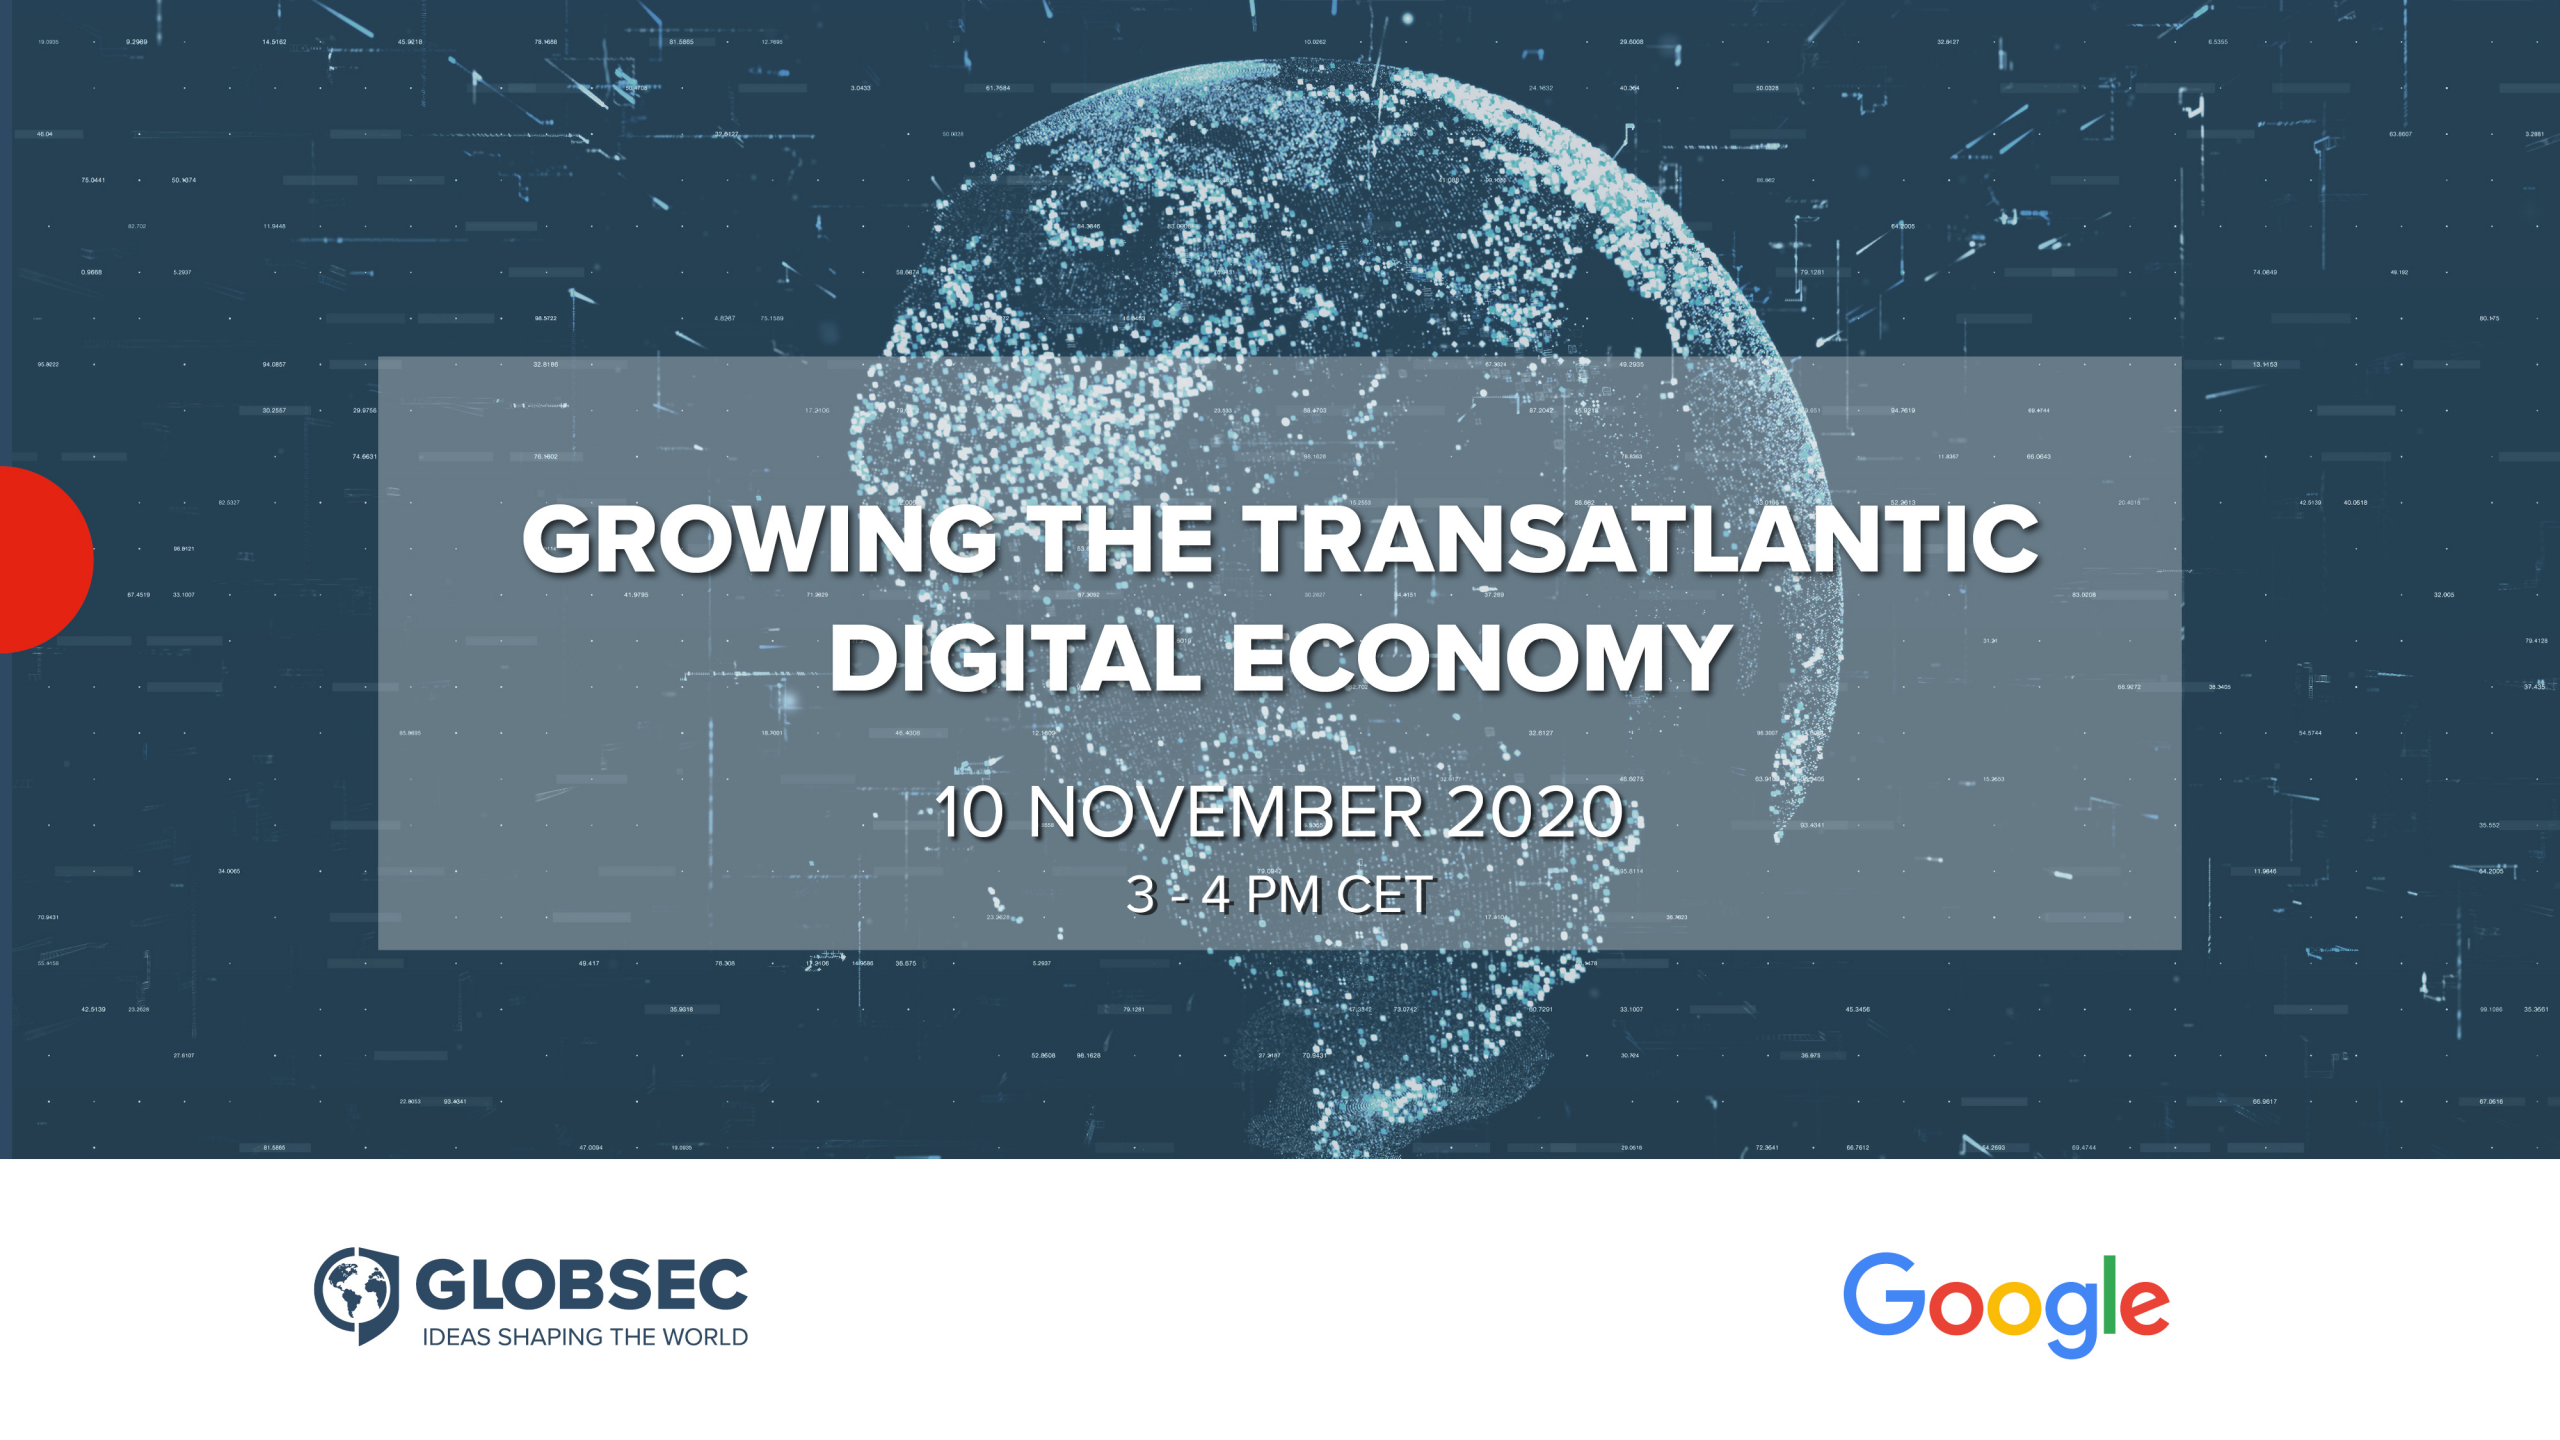 Growing the Transatlantic Digital Economy